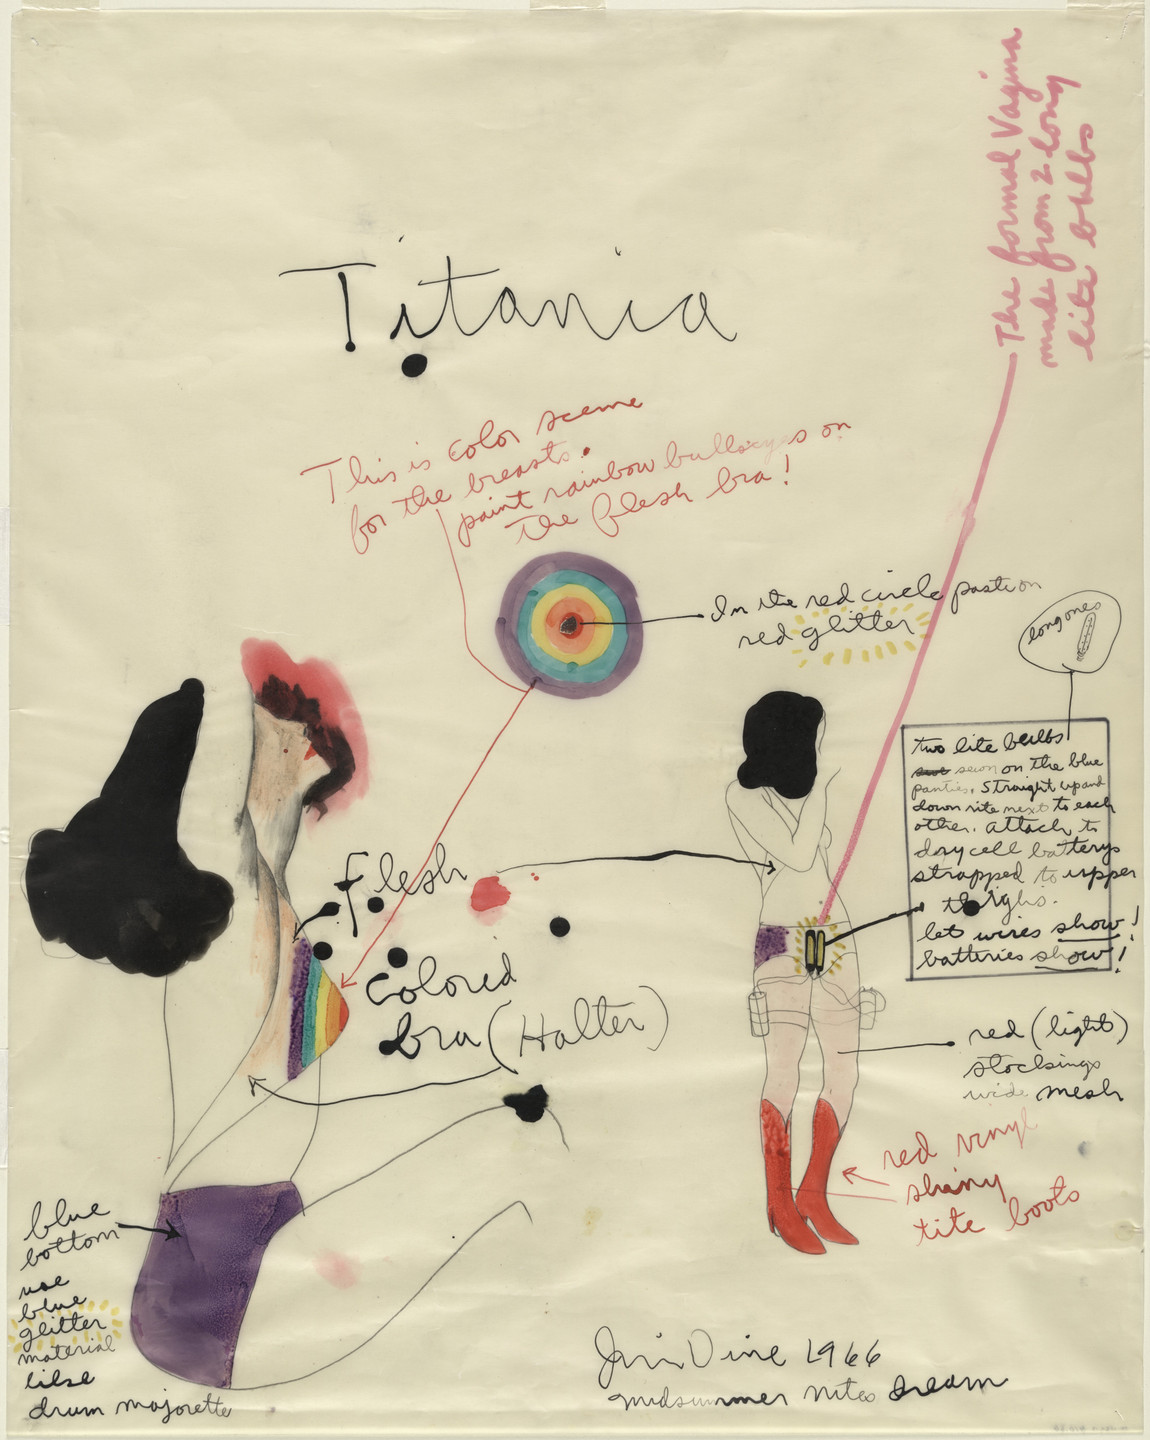 Jim Dine. Titania. Costume design for the play A Midsummer Night's Dream. 1966